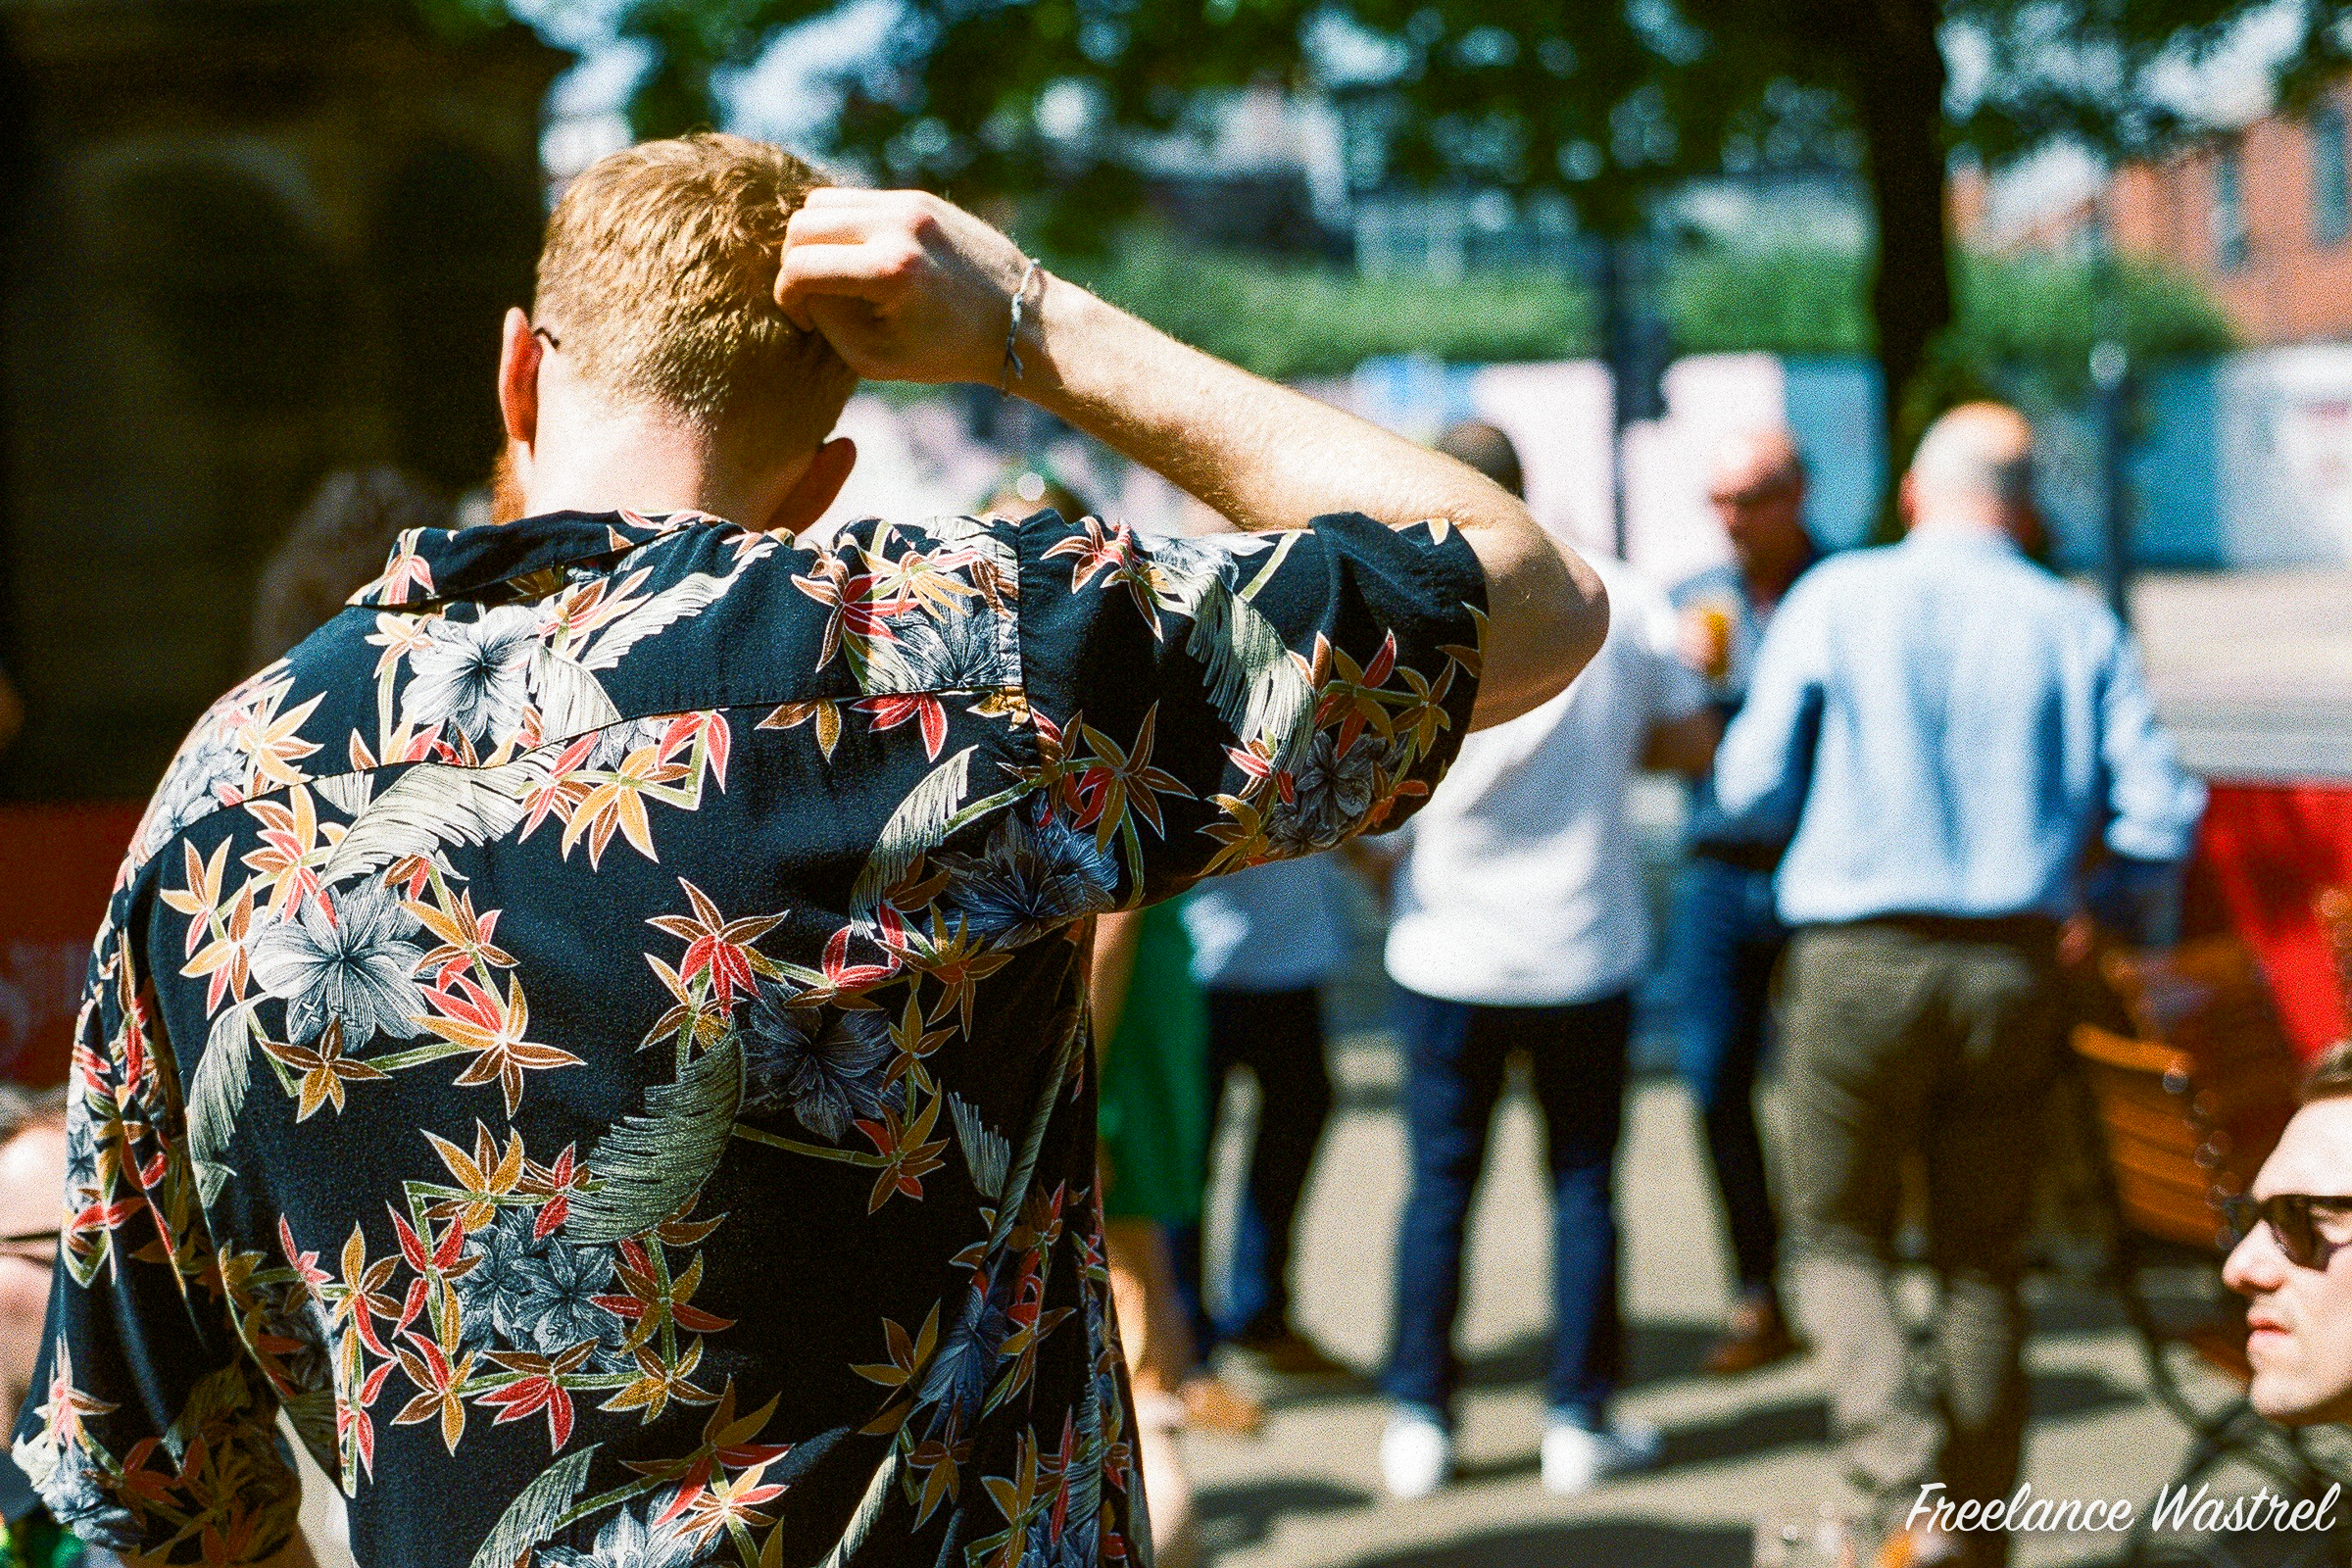 Hawaiian shirt, Sheffield, June 2019